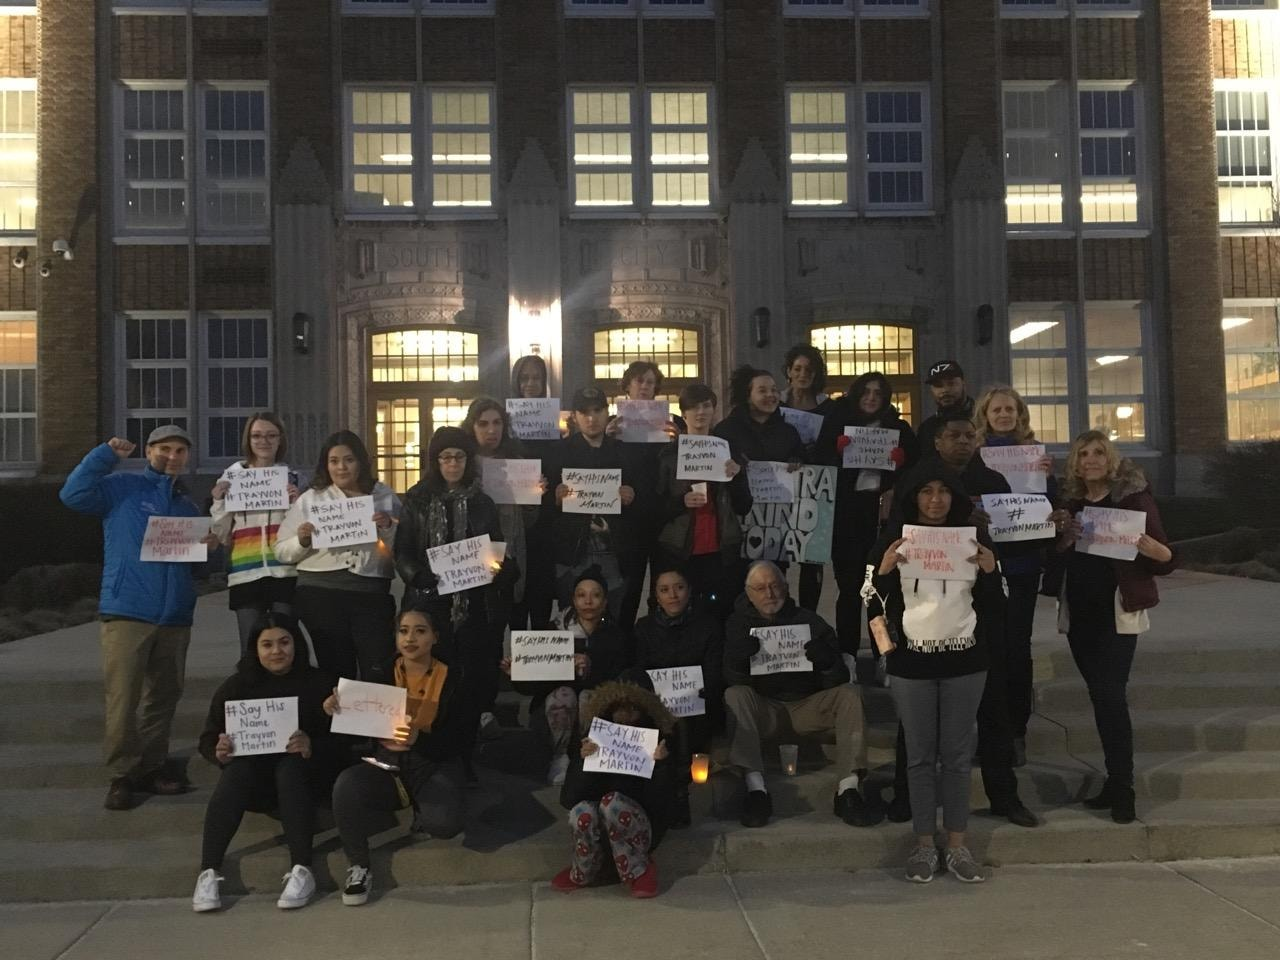 Feb. 26, 2019 – Salt Lake Vigil for Trayvon Martin